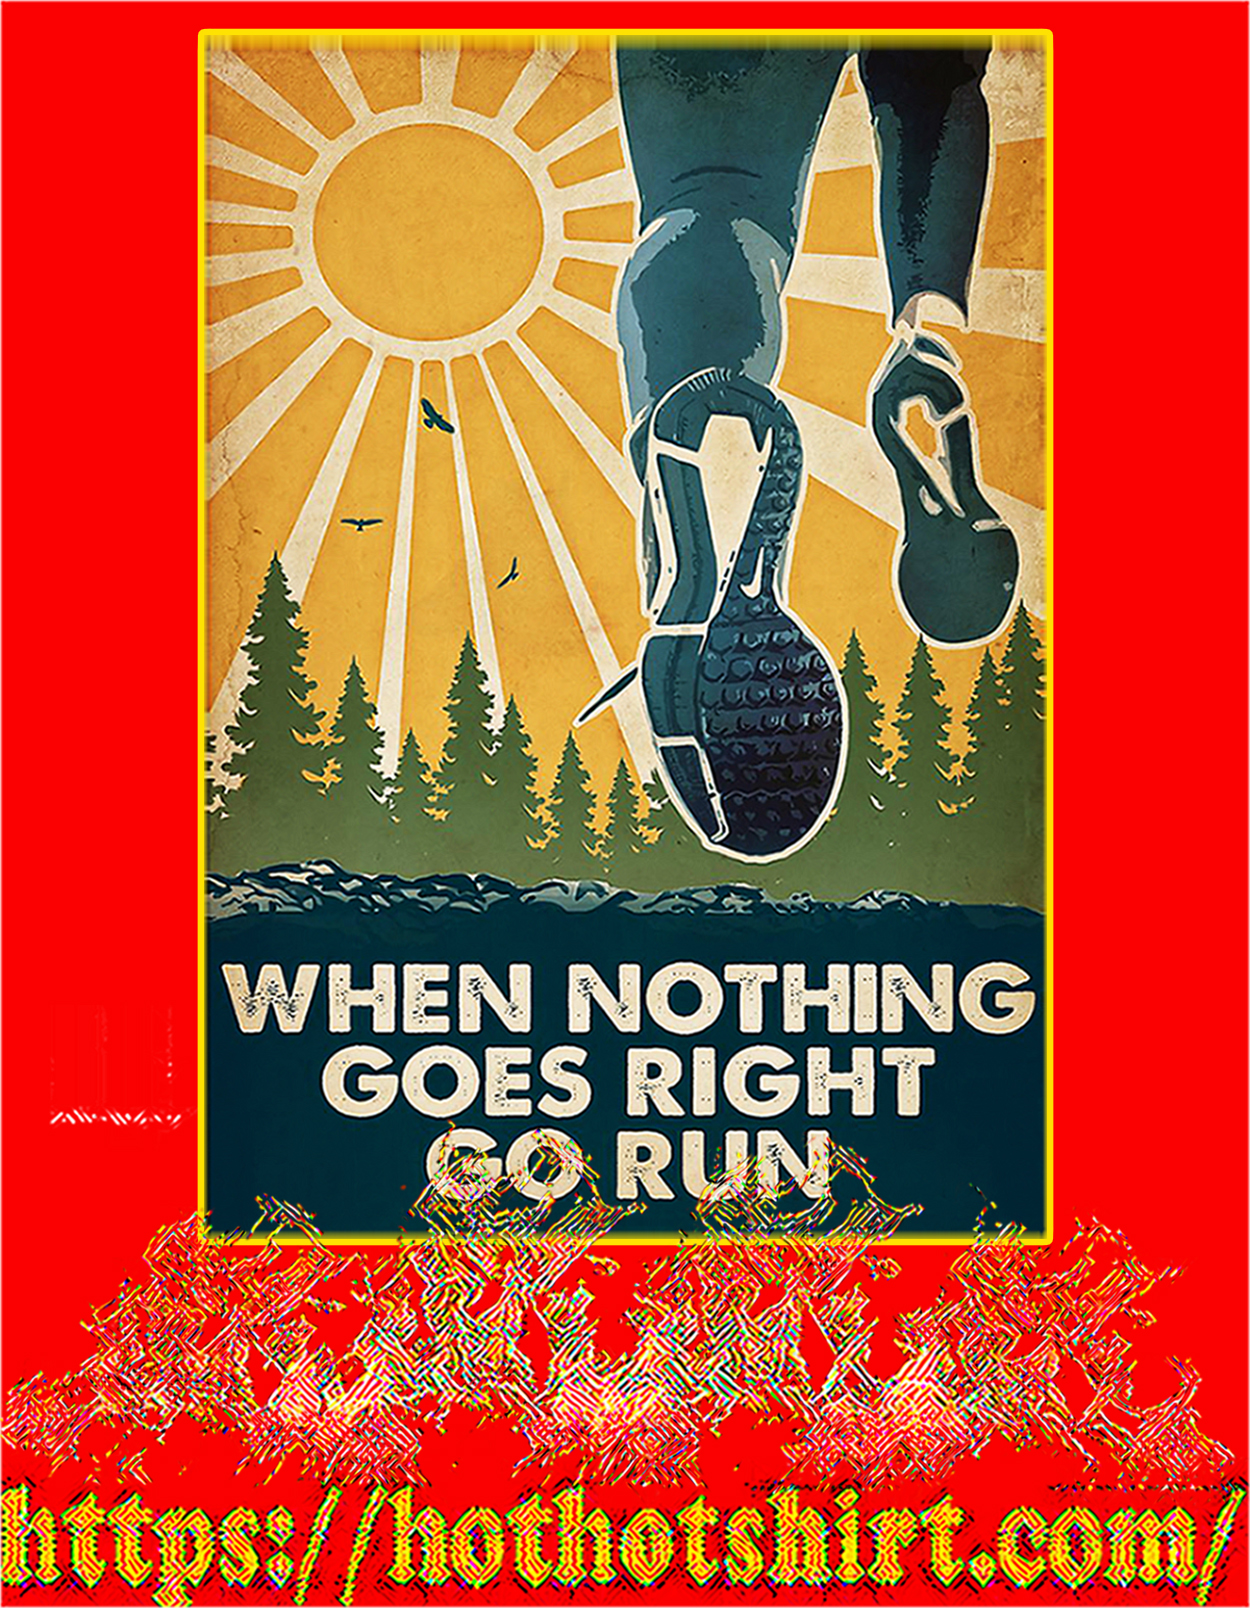 Running When nothing goes right go run poster - A3